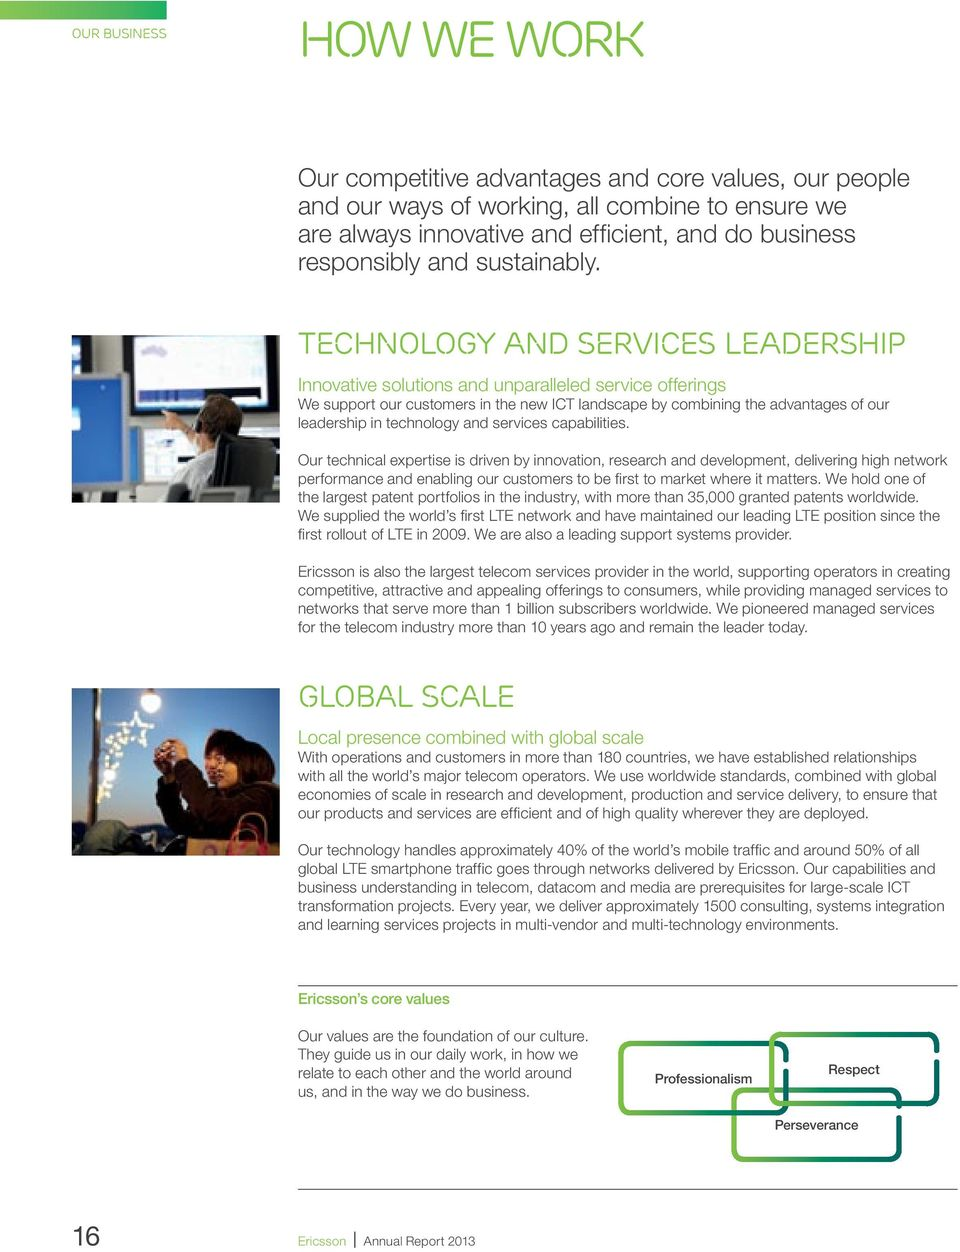 TECHNOLOGY and SERVICES LEADERSHIP Innovative solutions and unparalleled service offerings We support our customers in the new ICT landscape by combining the advantages of our leadership in